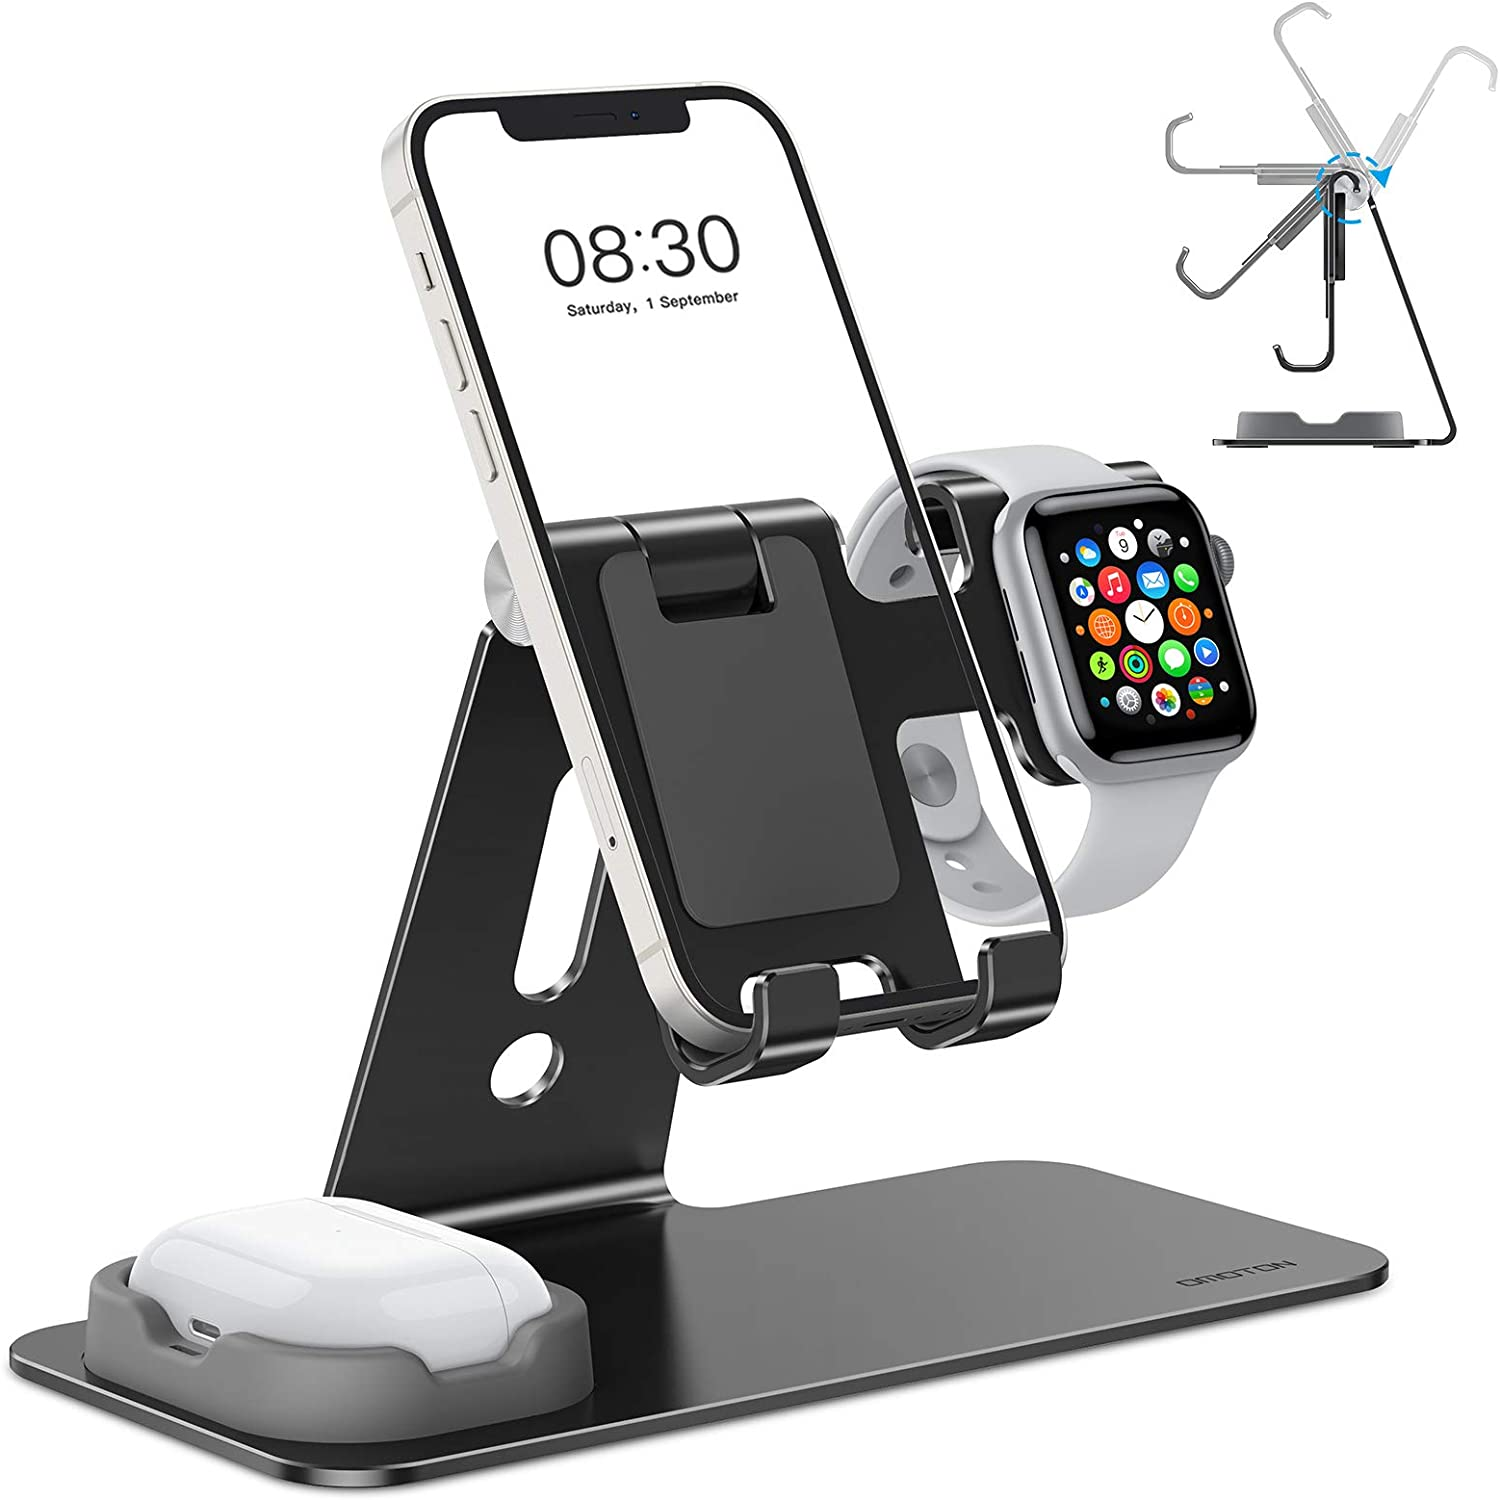 OMOTON Adjustable Apple Watch Stand, Triunity Charging Dock For iWatch, AirPod and iPhone 11/XR/XS/6/7/8 Plus/12 Pro Max, Original Apple Watch Magnetic Charging Cable Required, Black